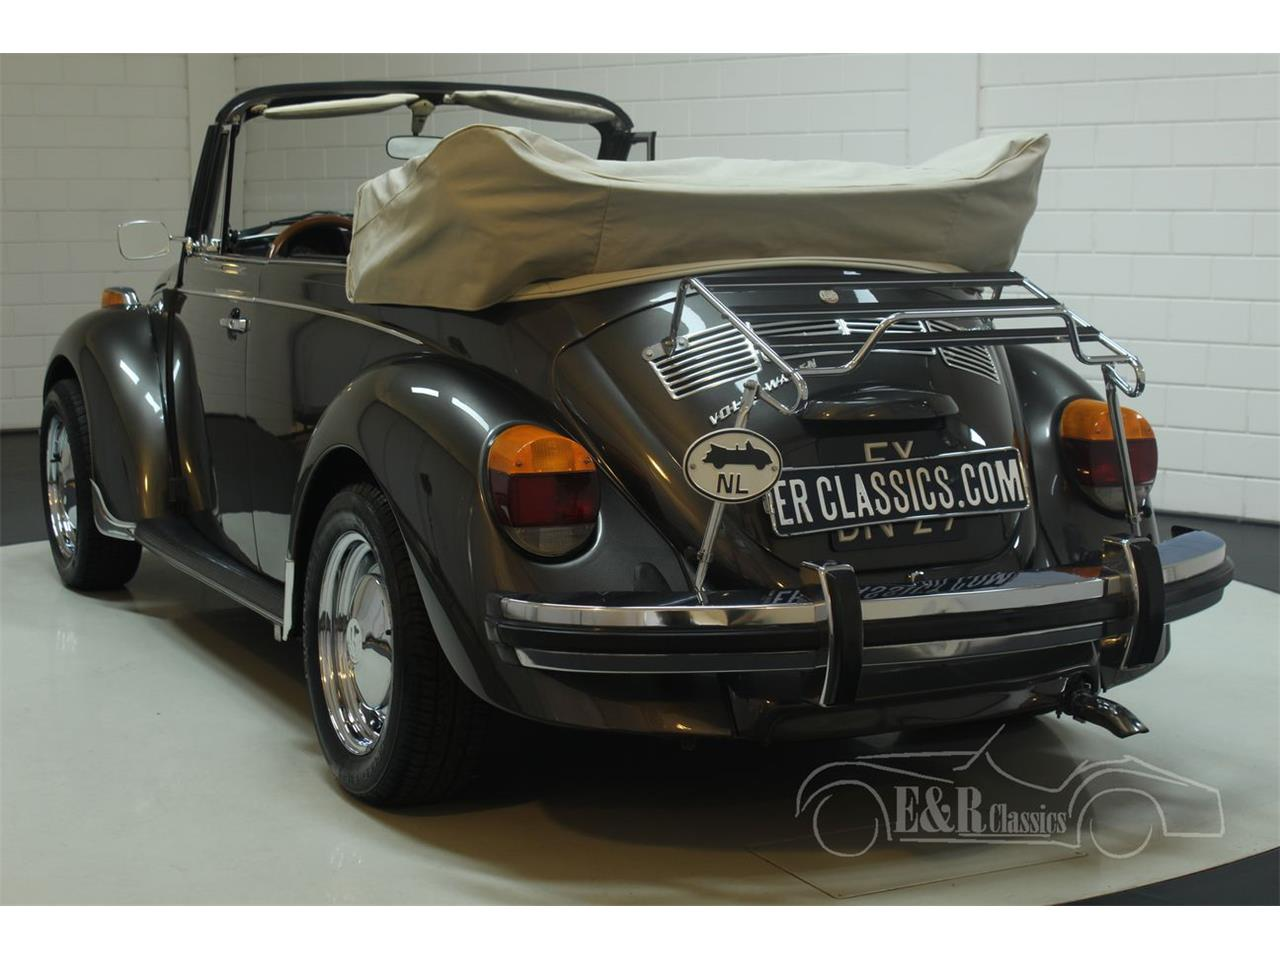 Large Picture of 1979 Volkswagen Beetle located in Waalwijk Noord-Brabant - $29,000.00 - OICV